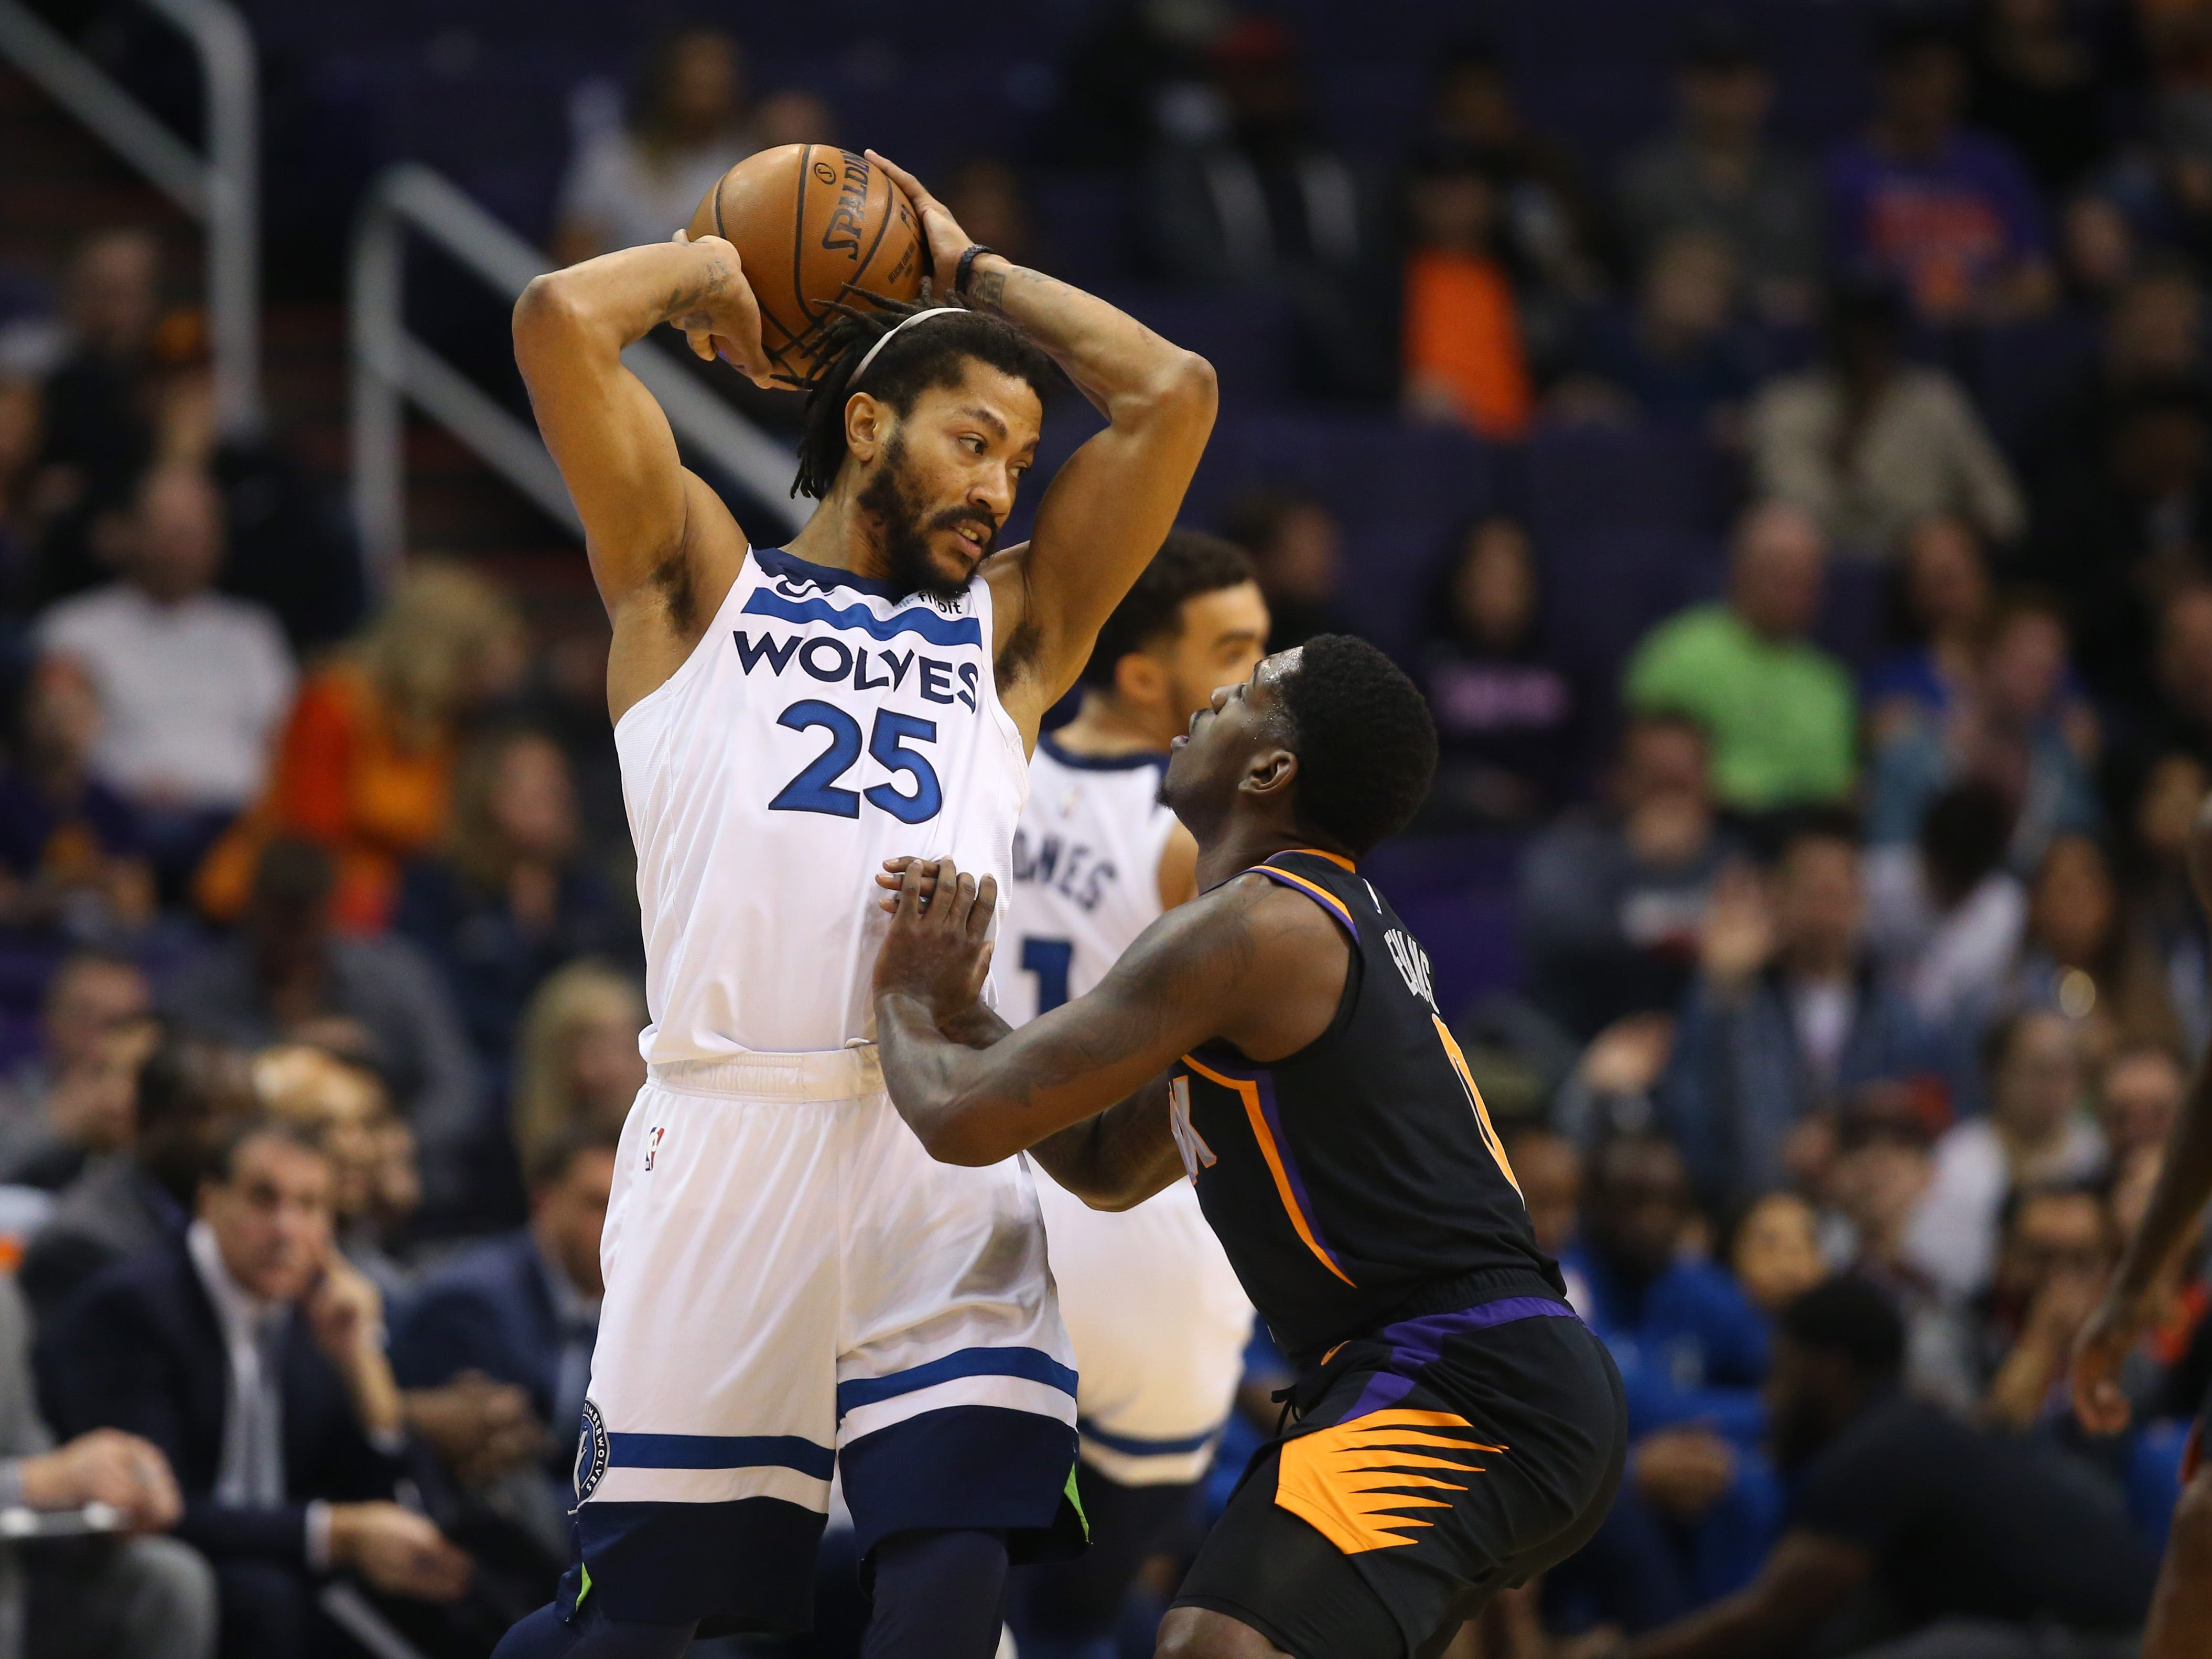 Dec 15, 2018; Phoenix, AZ, USA; Minnesota Timberwolves guard Derrick Rose (25) against Phoenix Suns guard Jawun Evans in the first half at Talking Stick Resort Arena. Mandatory Credit: Mark J. Rebilas-USA TODAY Sports